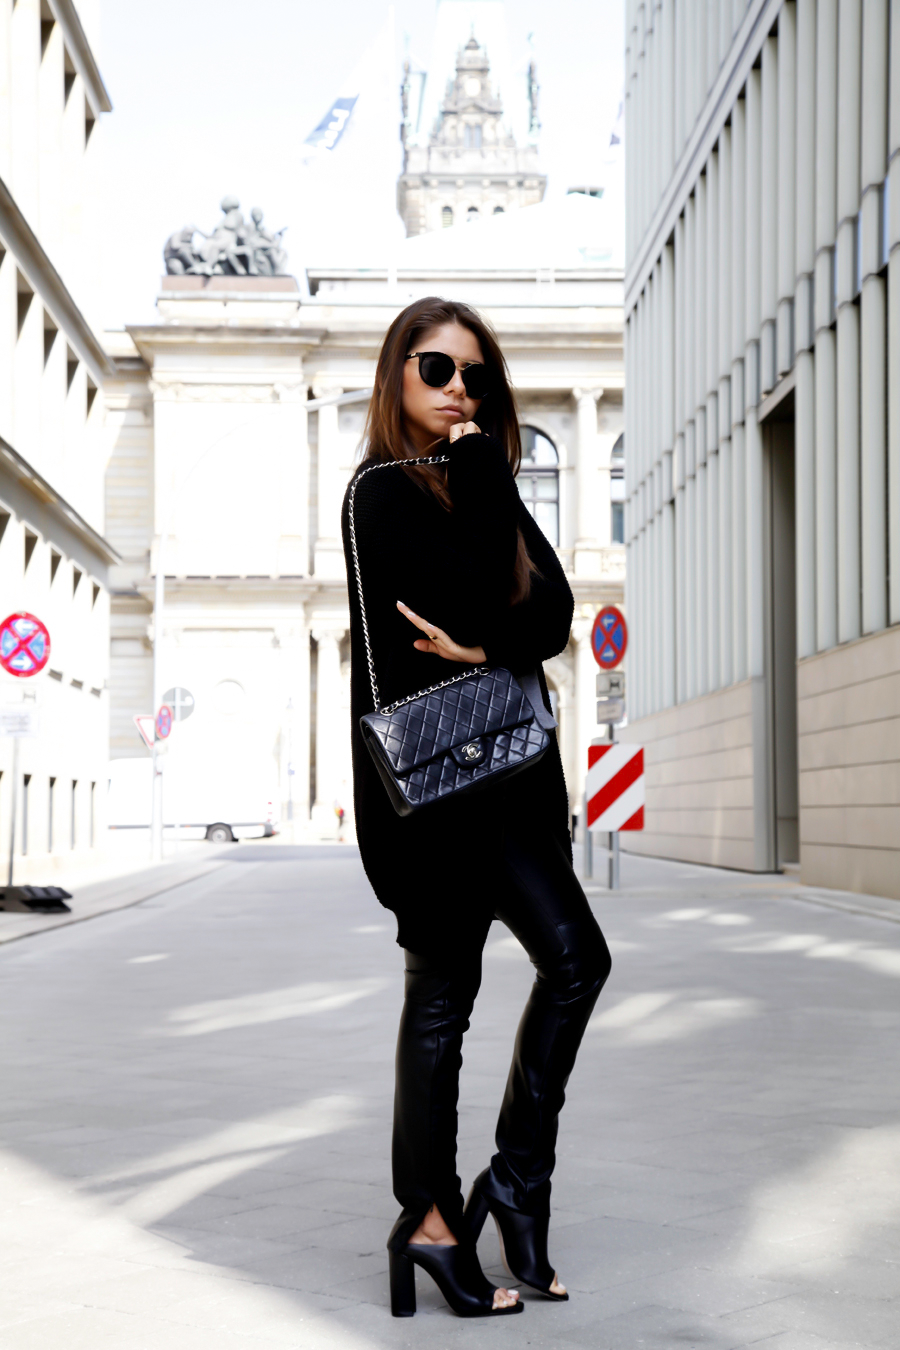 Fashionrella in Deutschland black leder